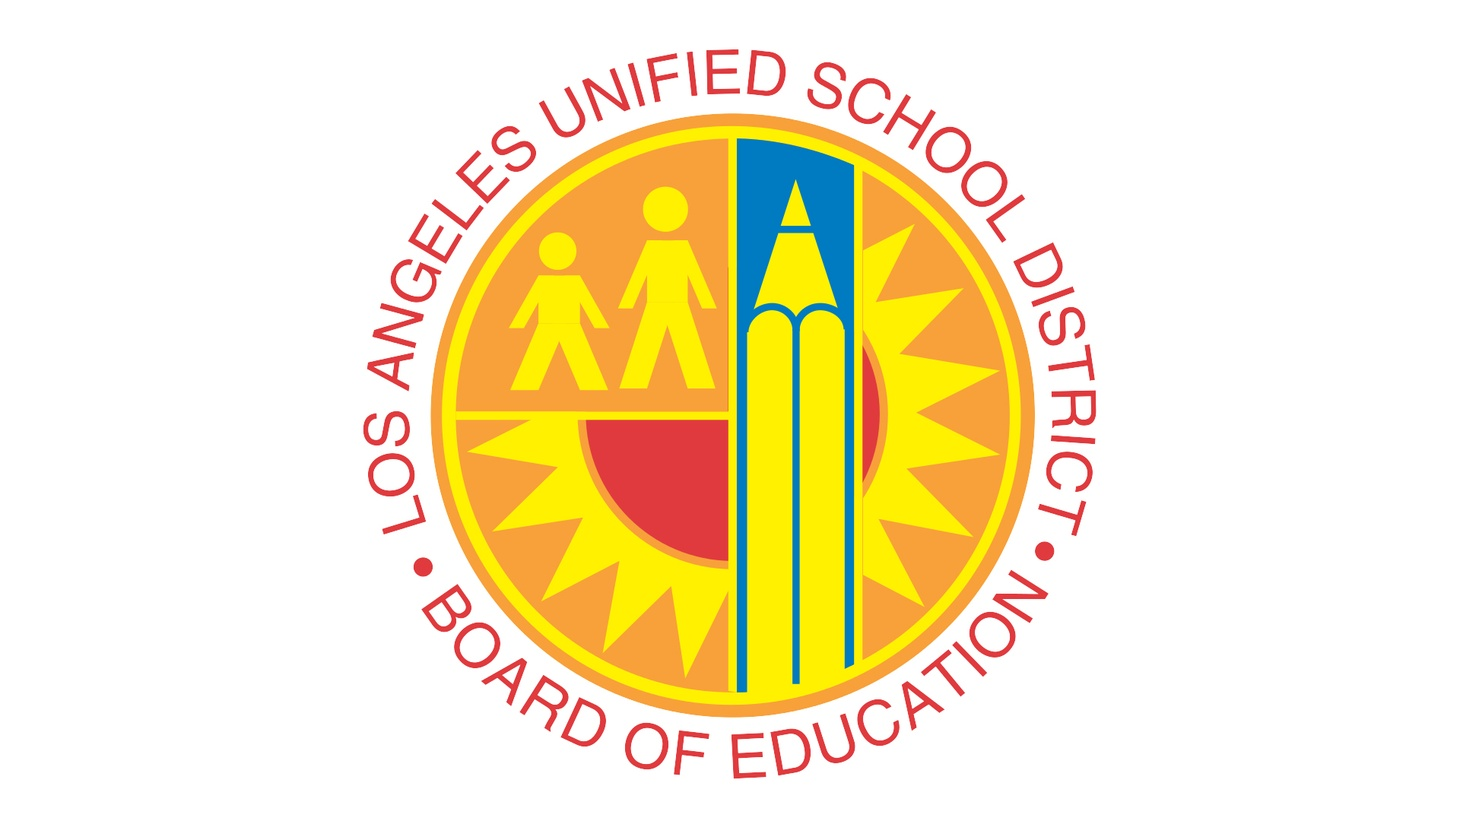 Seal of Los Angeles Unified School District.